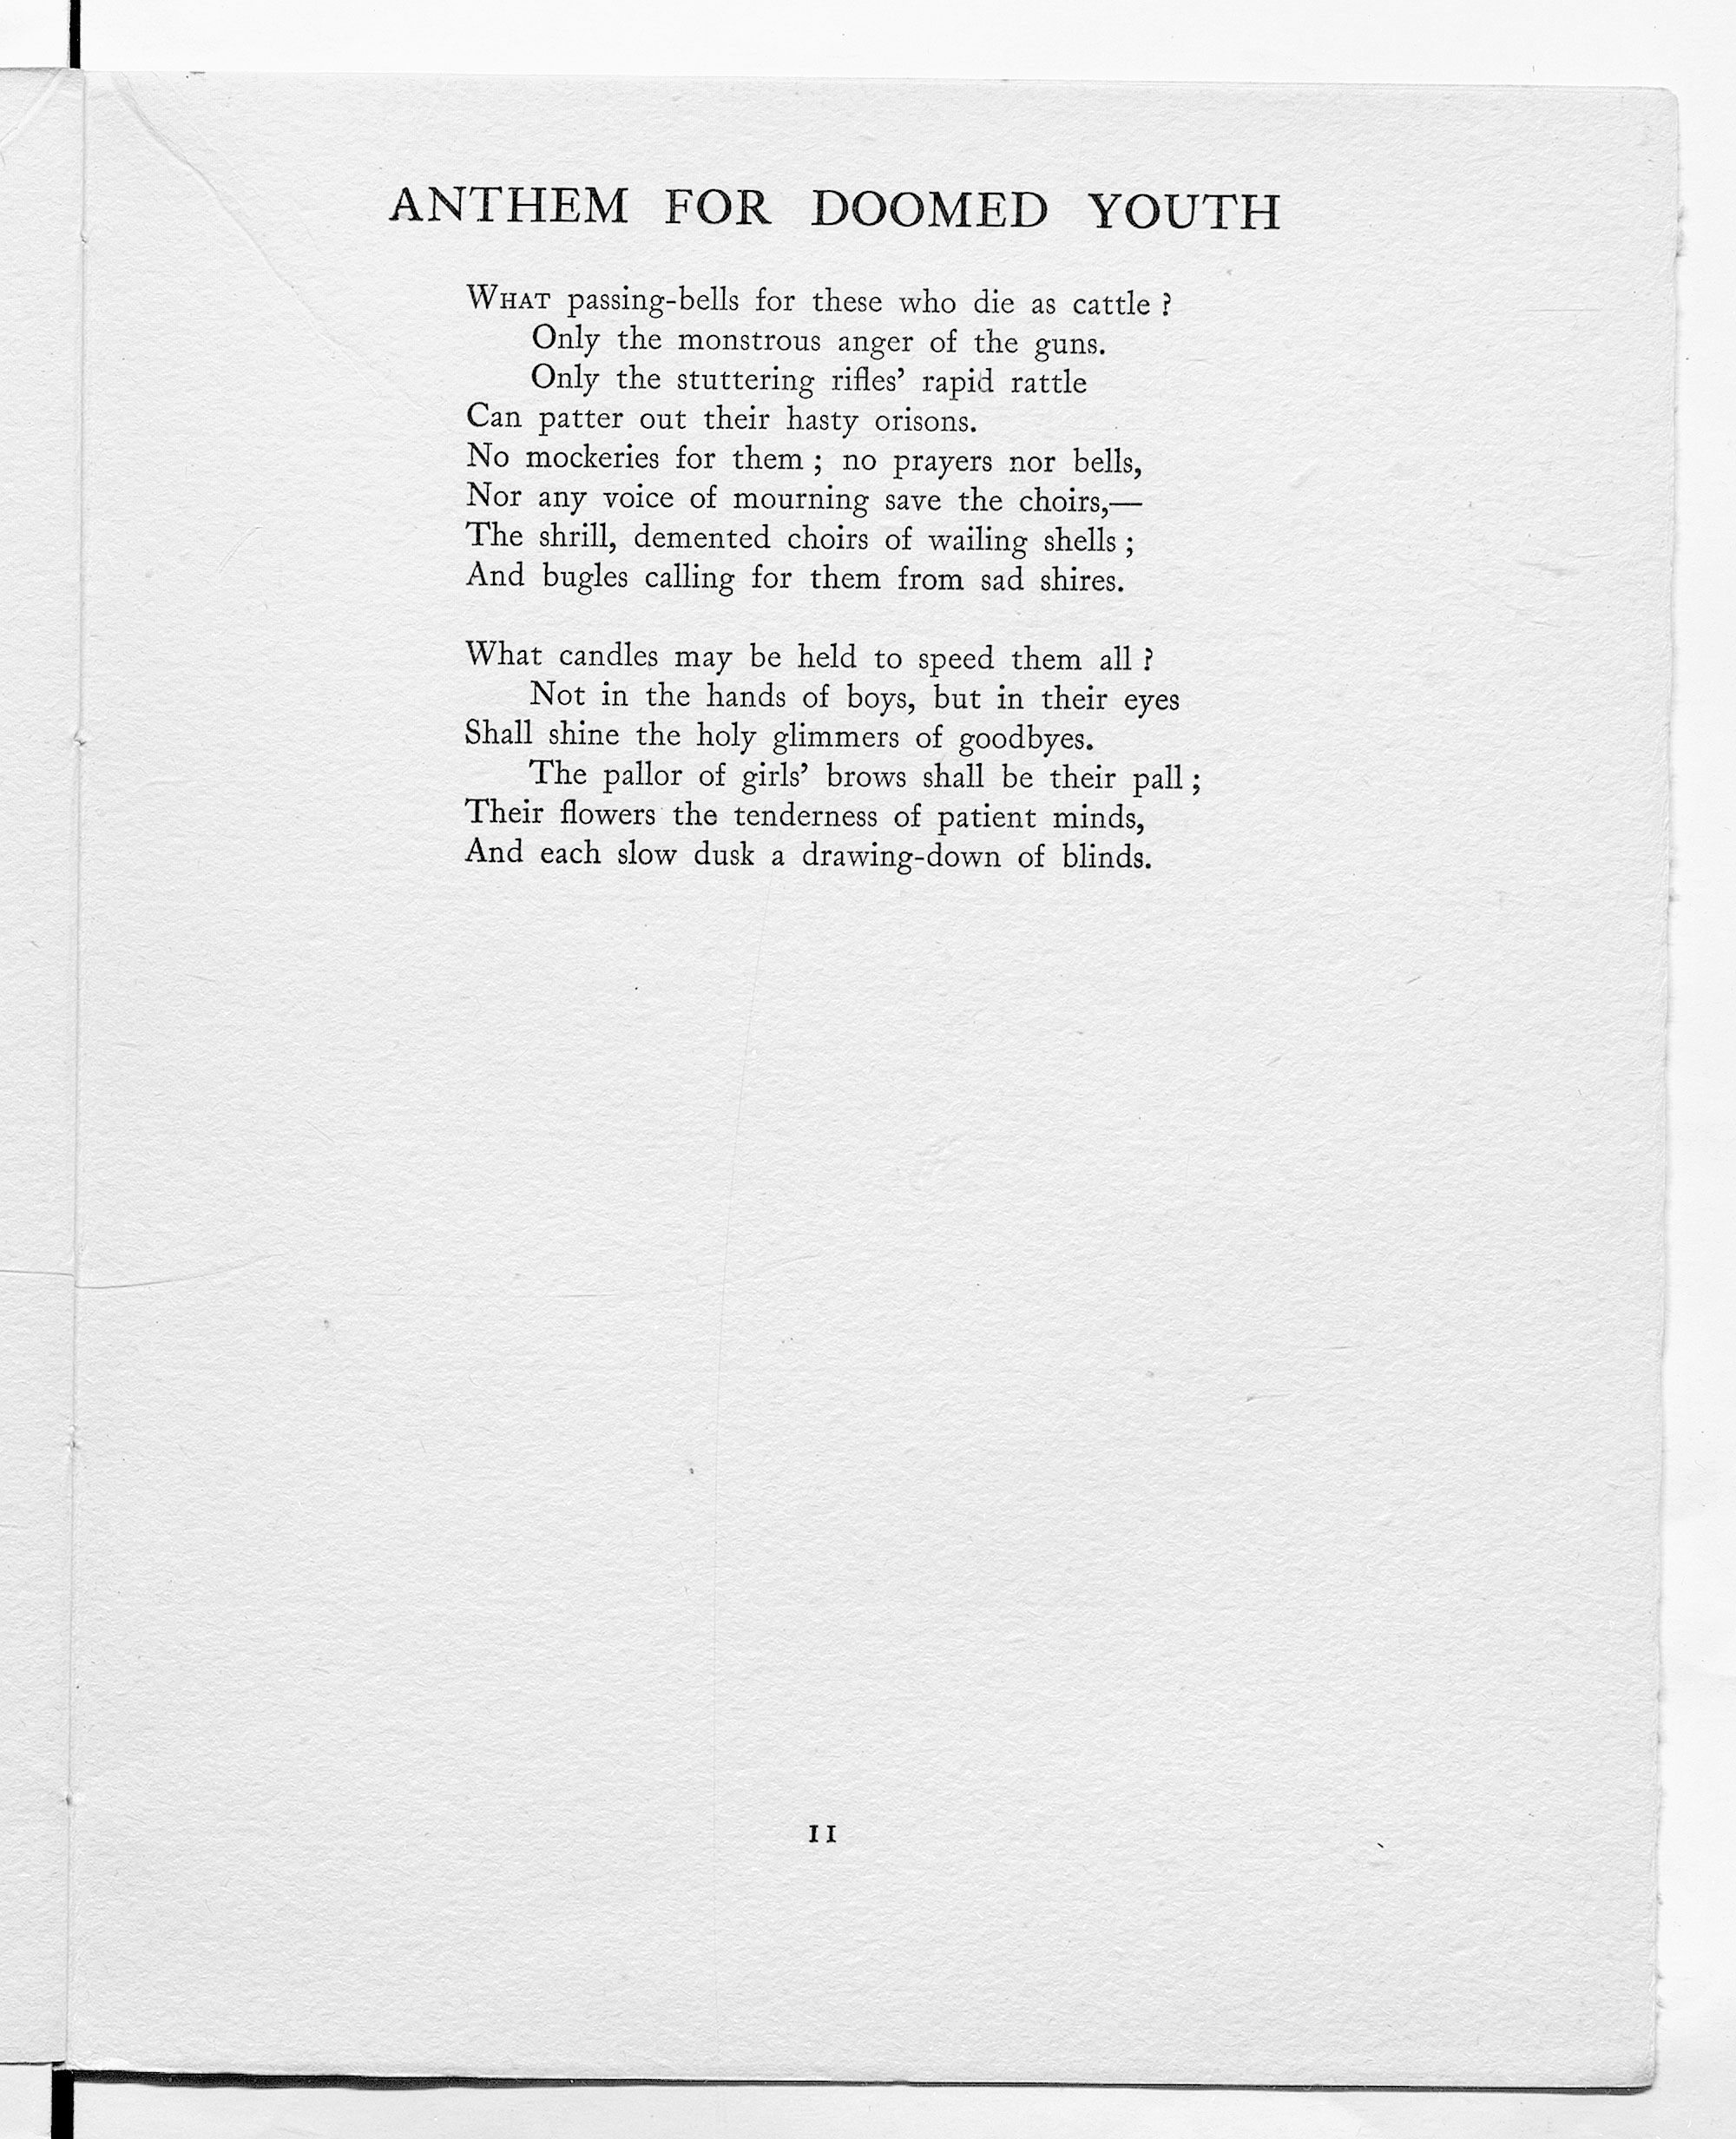 Anthem For Doomed Youth By Wilfred Owen As Published In